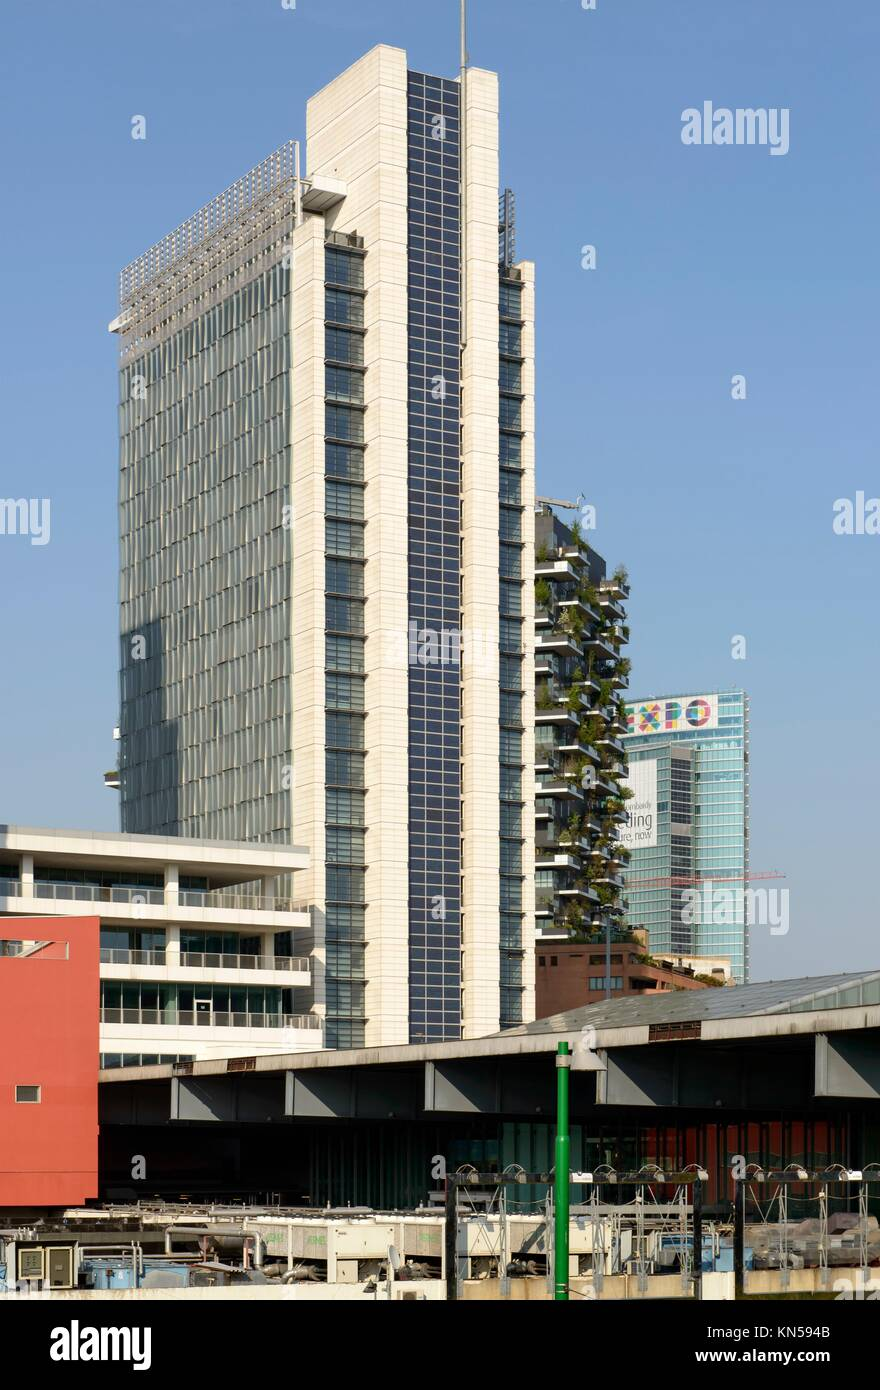 MILAN, ITALY - APRIL 11: foreshortening of tall buildings and, in background, Regione Lombardia building with EXPO - Stock Image